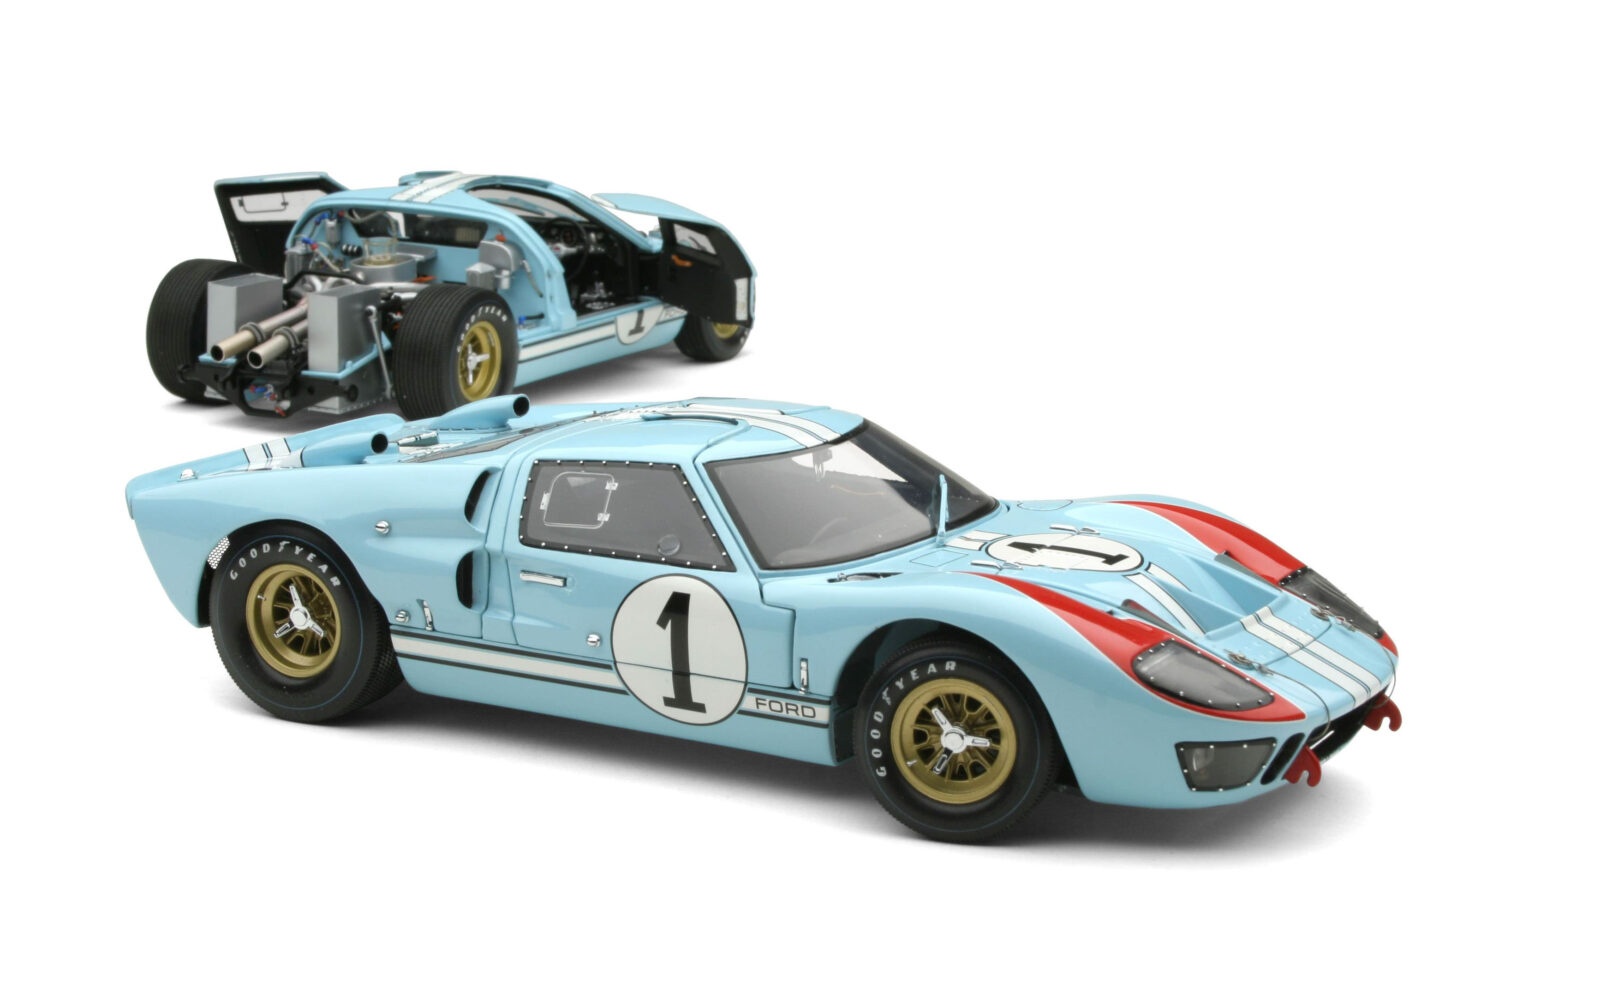 Ford GT40 Scale Model 1600x999 - 1966 Le Mans Ford GT40 GMP 1:12 Scale Model